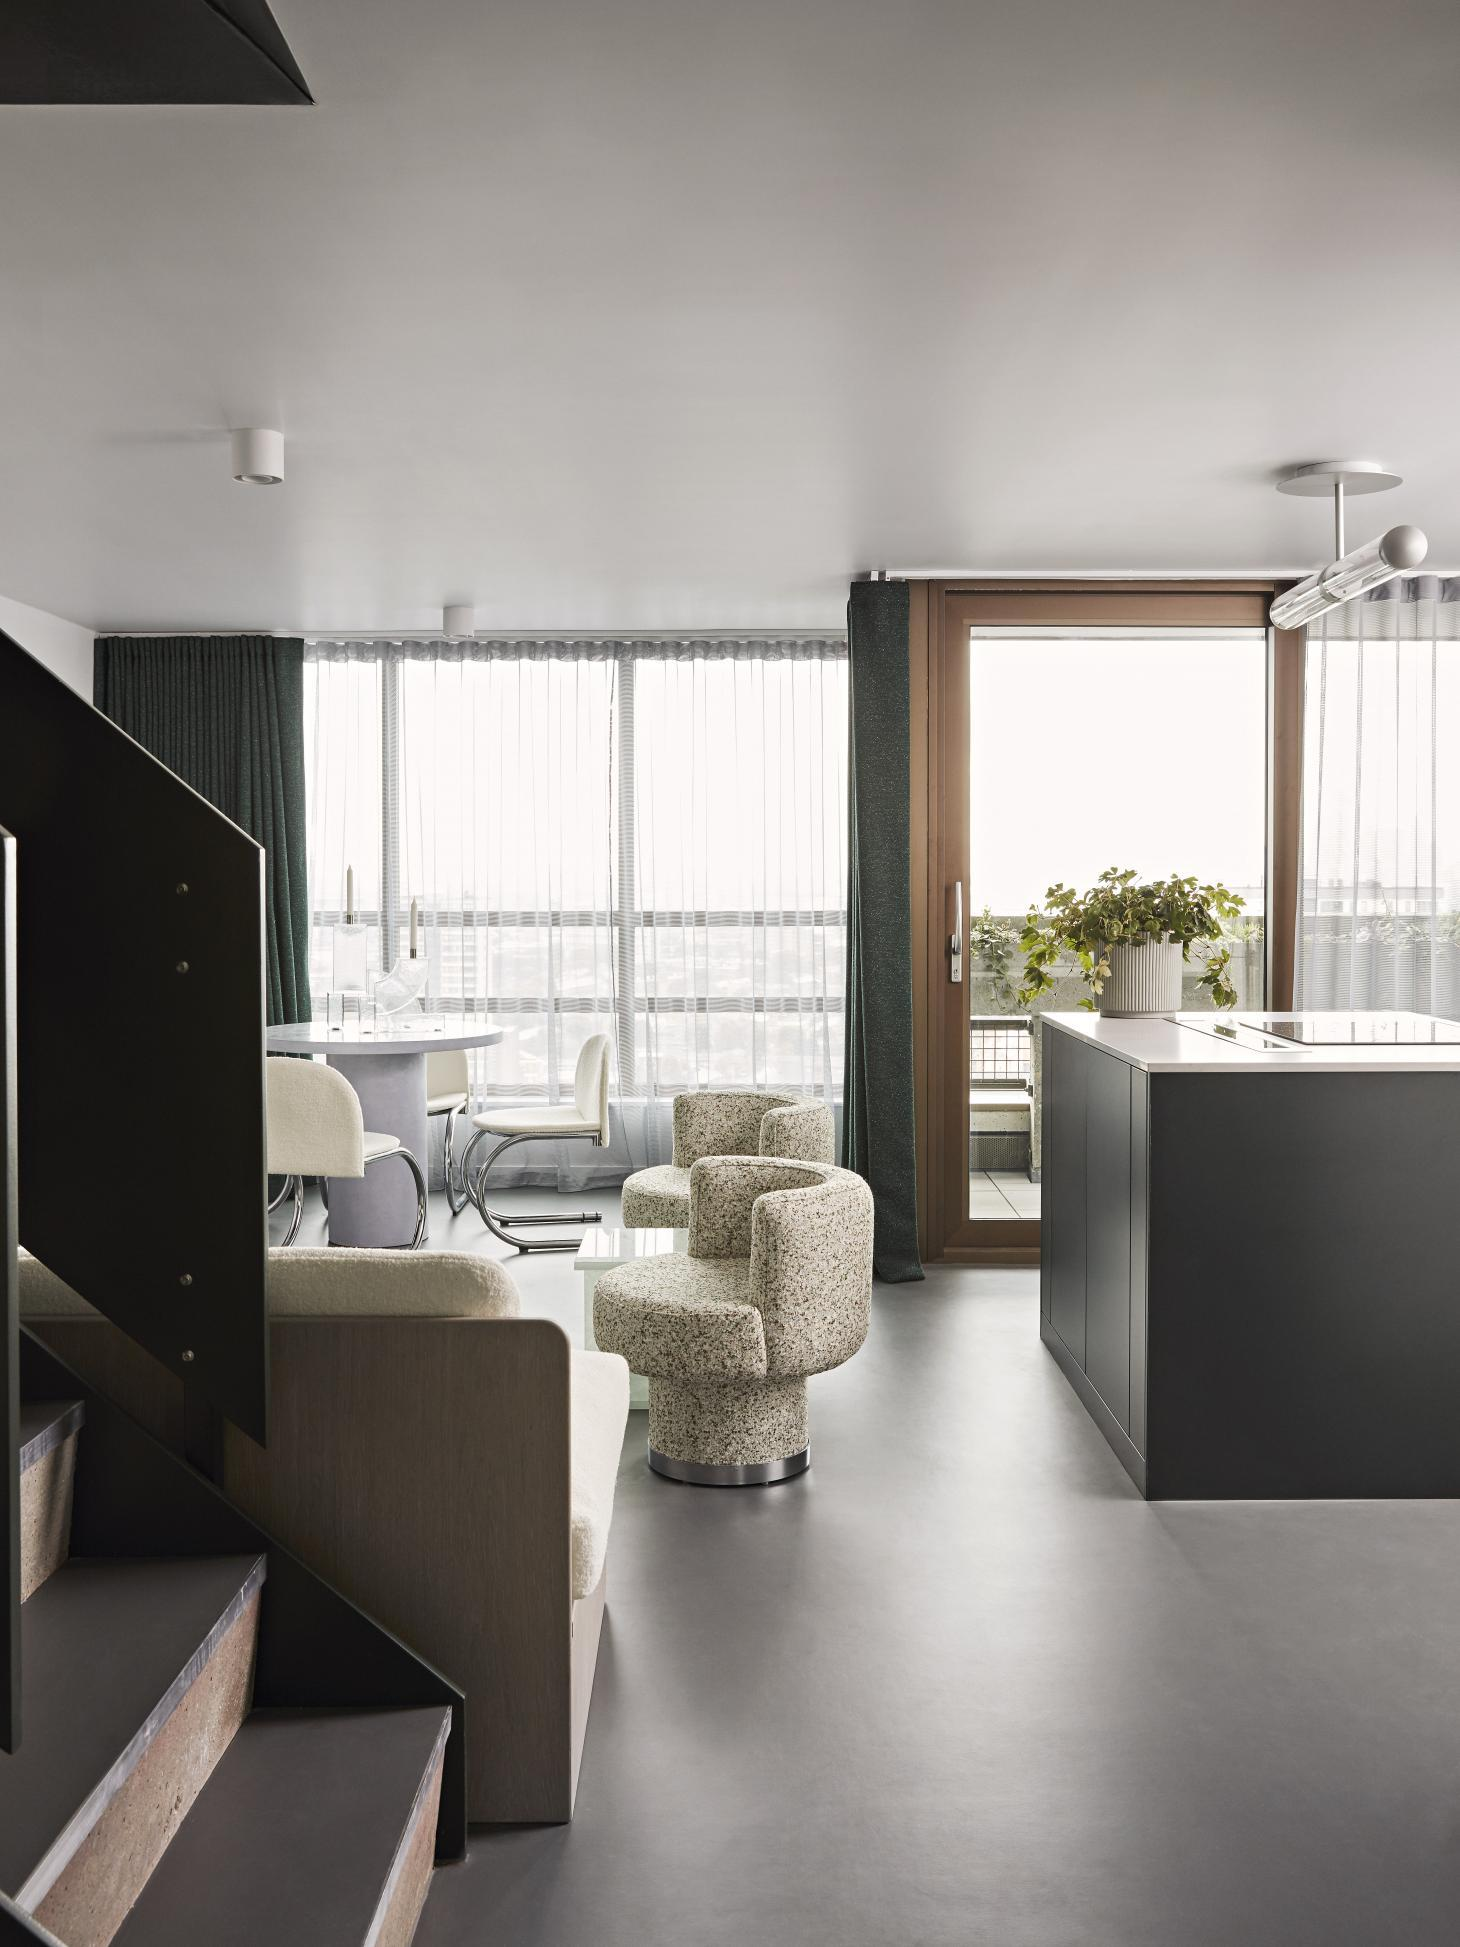 Balfron Tower show apartment interior by 2LG Studio